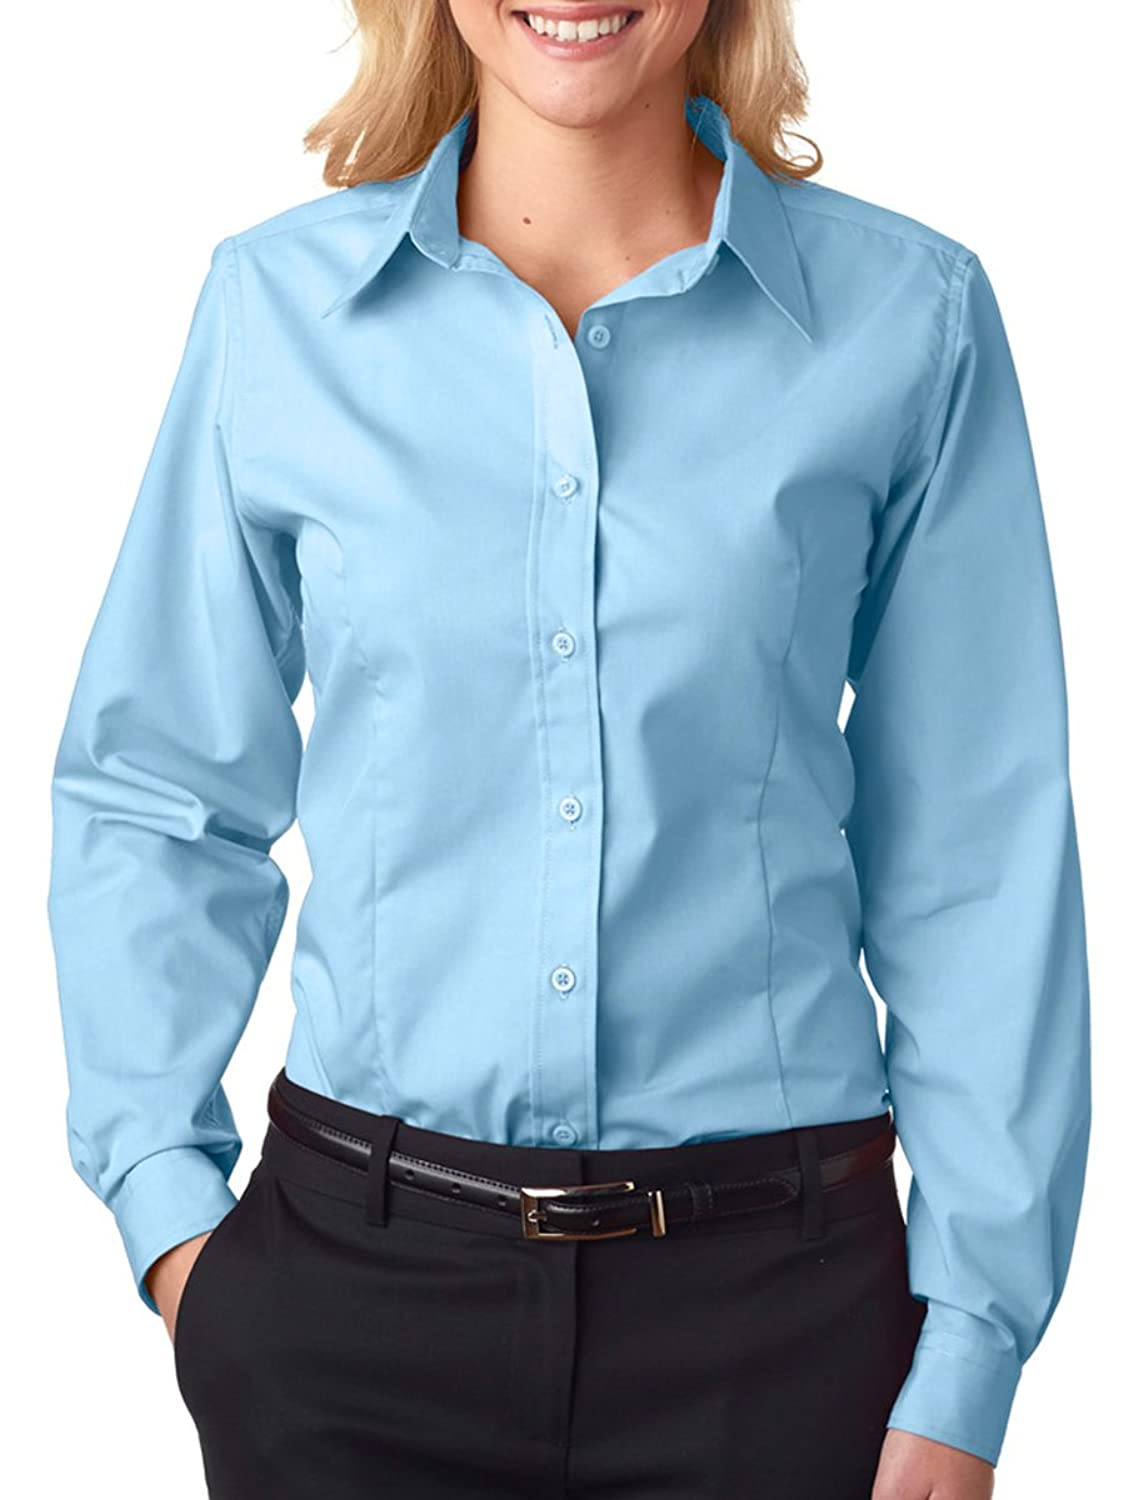 8355L UltraClub Ladies' Easy-Care Broadcloth - Light Blue - X-Large